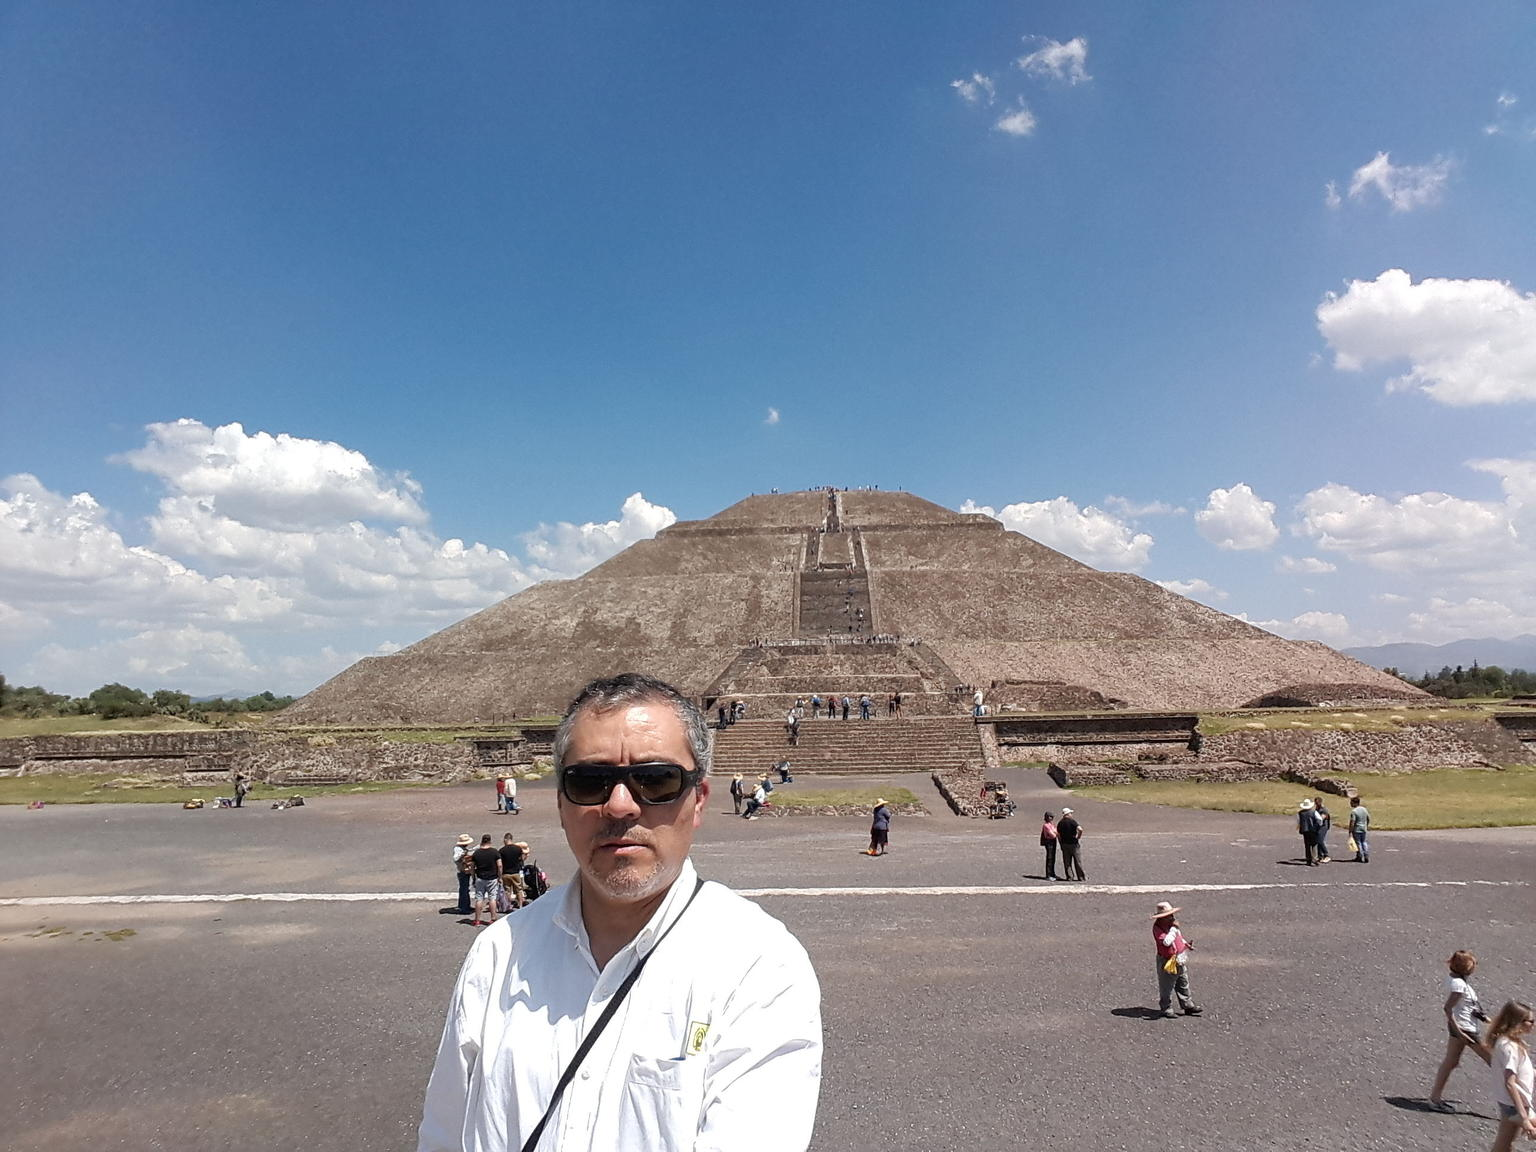 MORE PHOTOS, Teotihuacan, Tlatelolco, Guadalupe Shrine and Tequila Tasting Tour